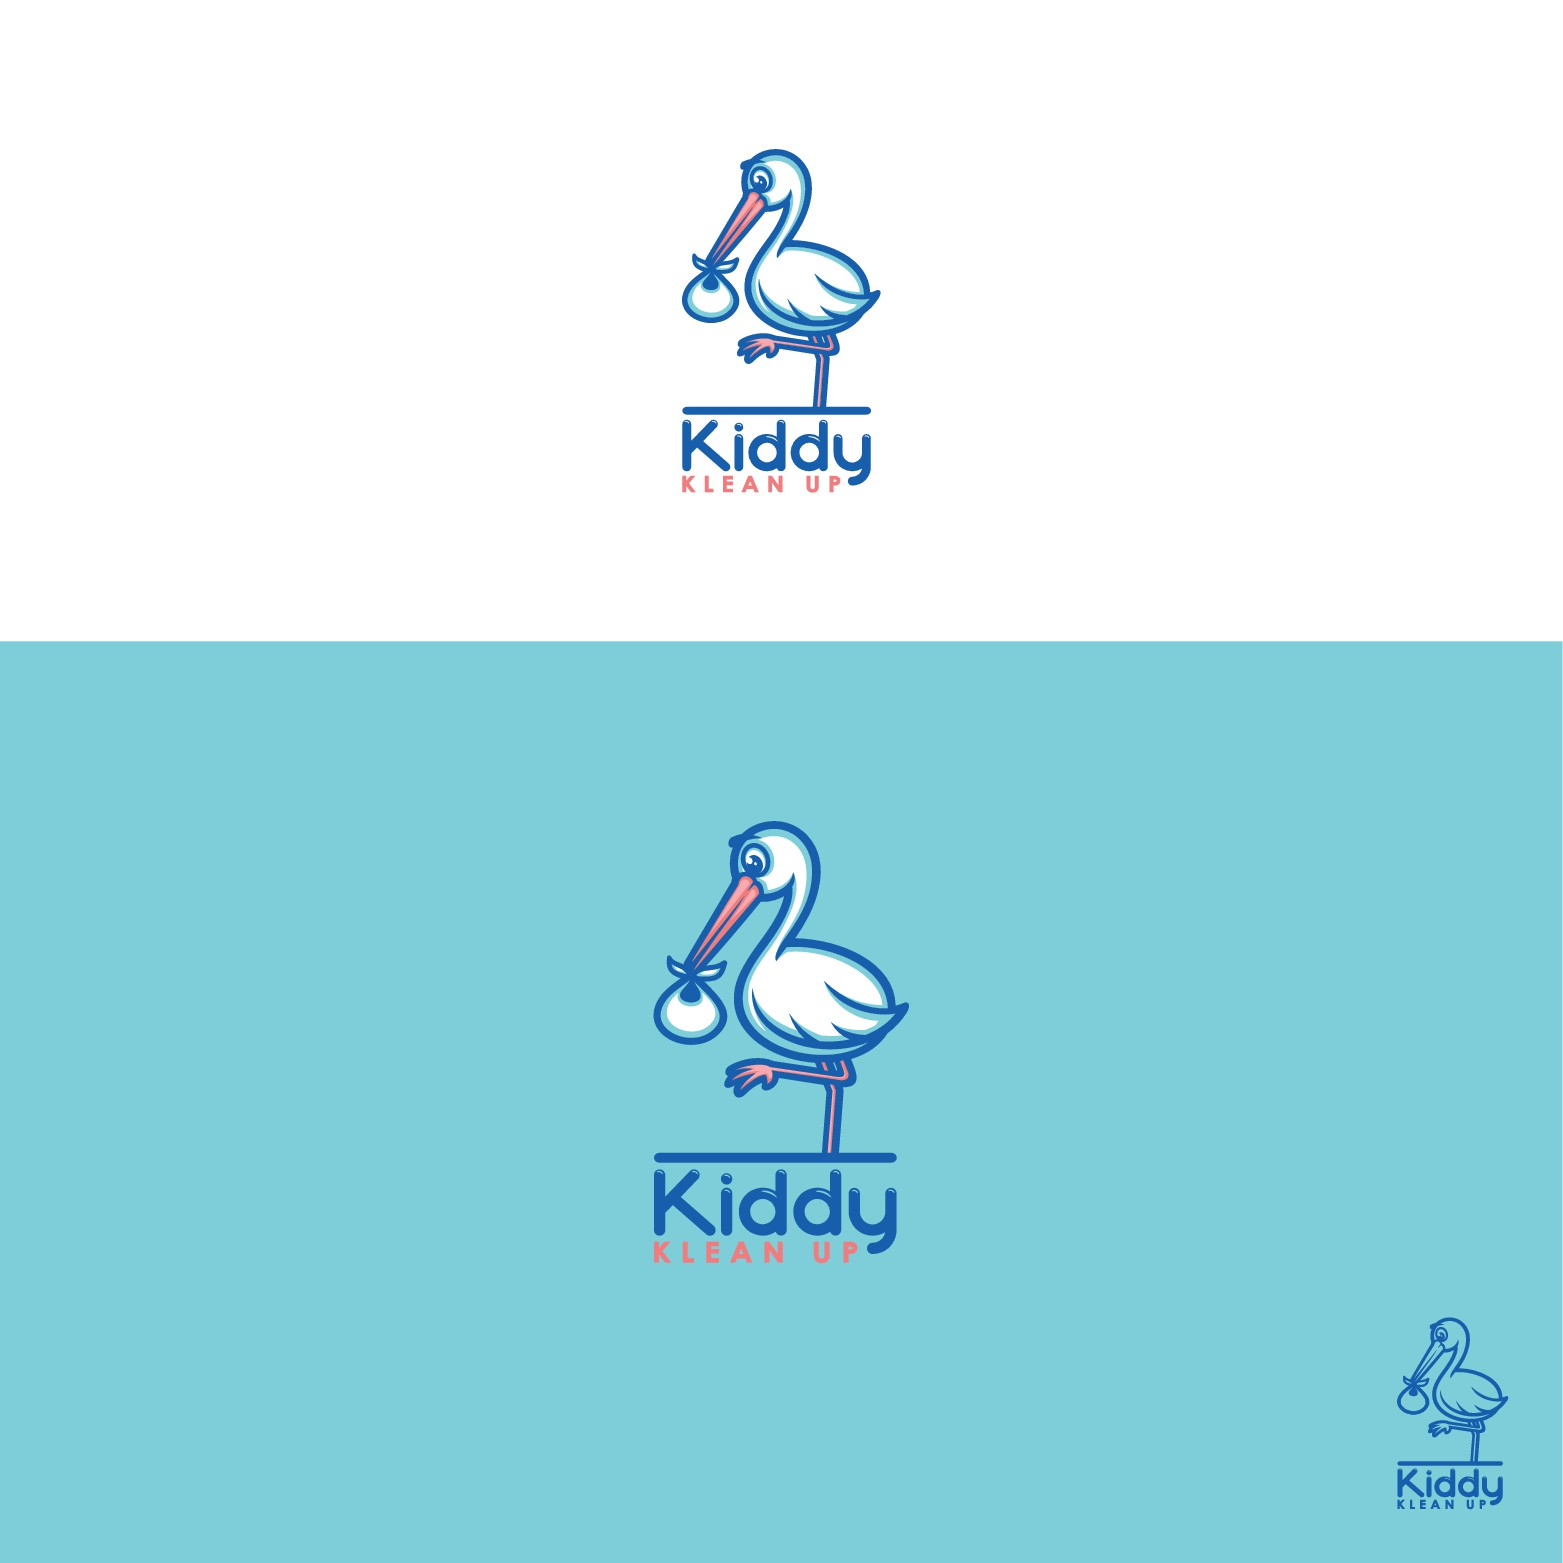 Design needed for a baby brand that helps connects mothers and children